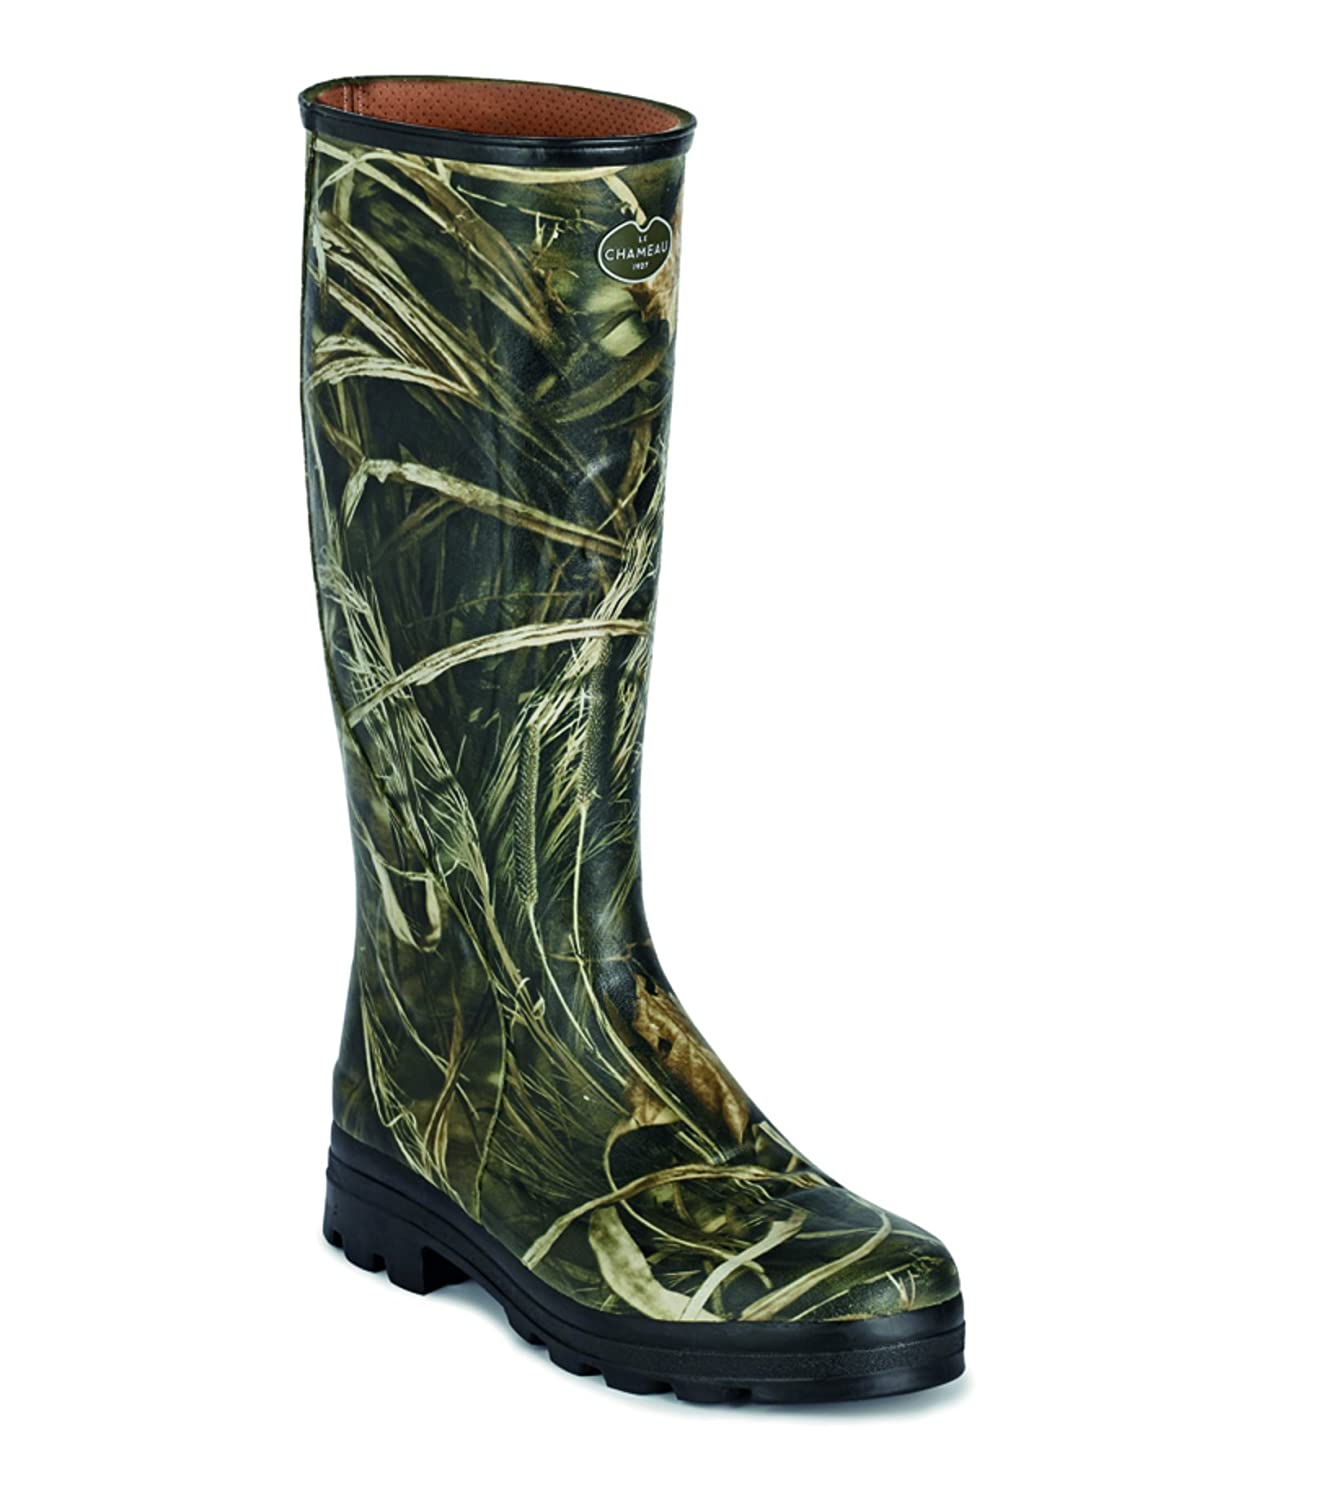 33f23d52778 Le Chameau Mens Country Boot Traqueur - Woodland Camo 41, olive ...